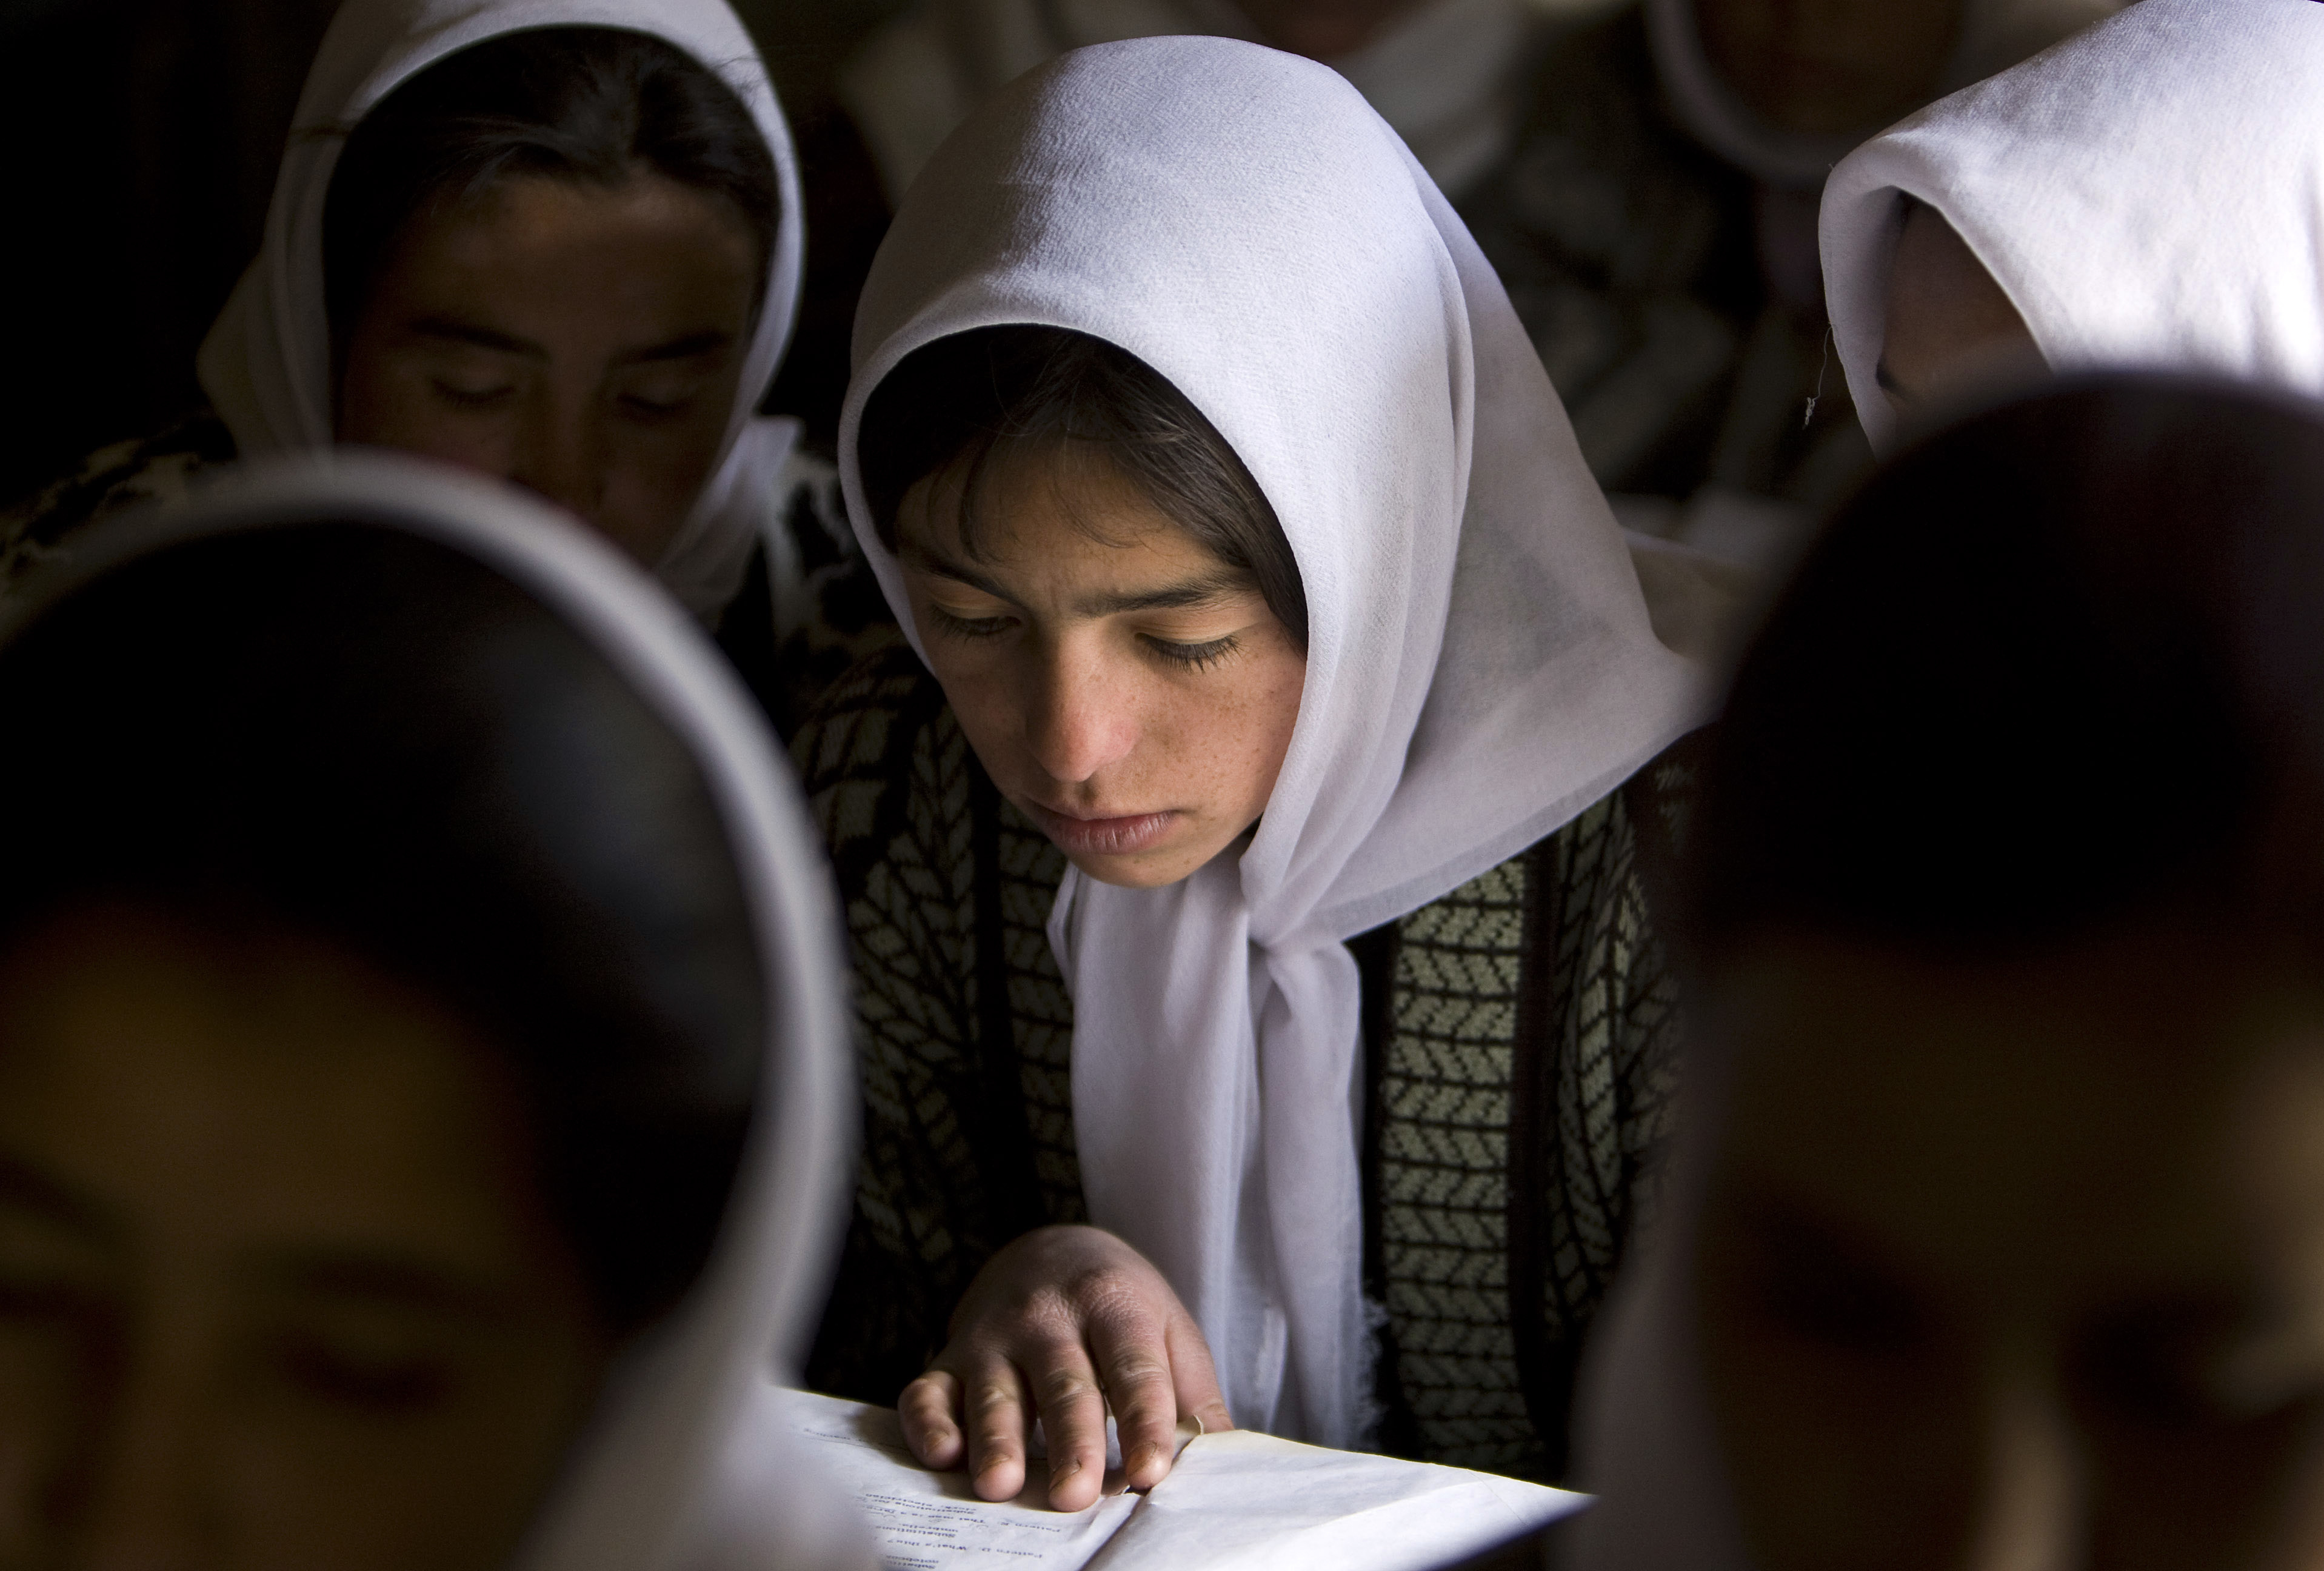 An Afghan girl reads a book in a classroom among other female students